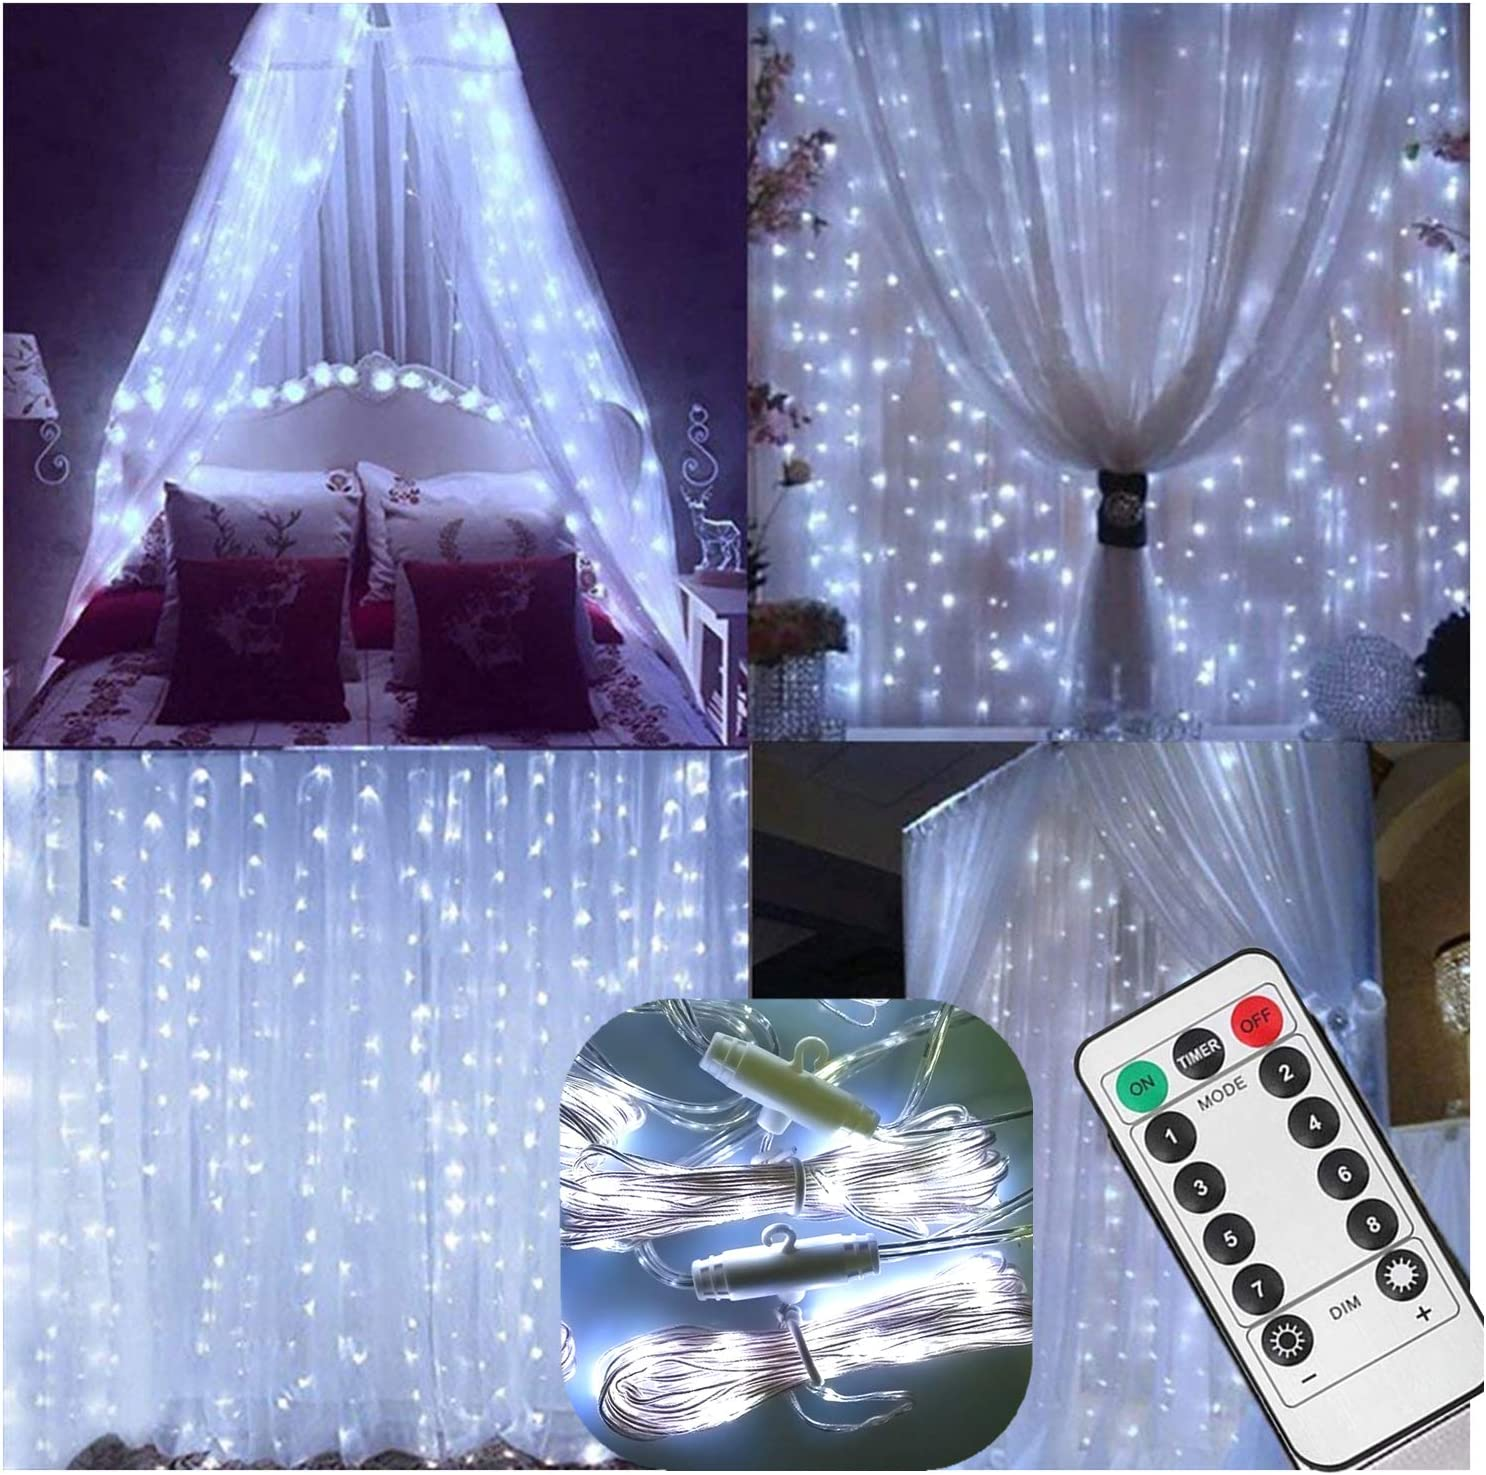 Curtain String Lights with Remote,Battery Operated,6.5ft x 6.5ft,200 LED Backdrop Icicle Fairy Lights for Wedding Shower Reception Daughter Kids Room Christmas Tree Decor - Timer,8 Mode,Dimmable,White